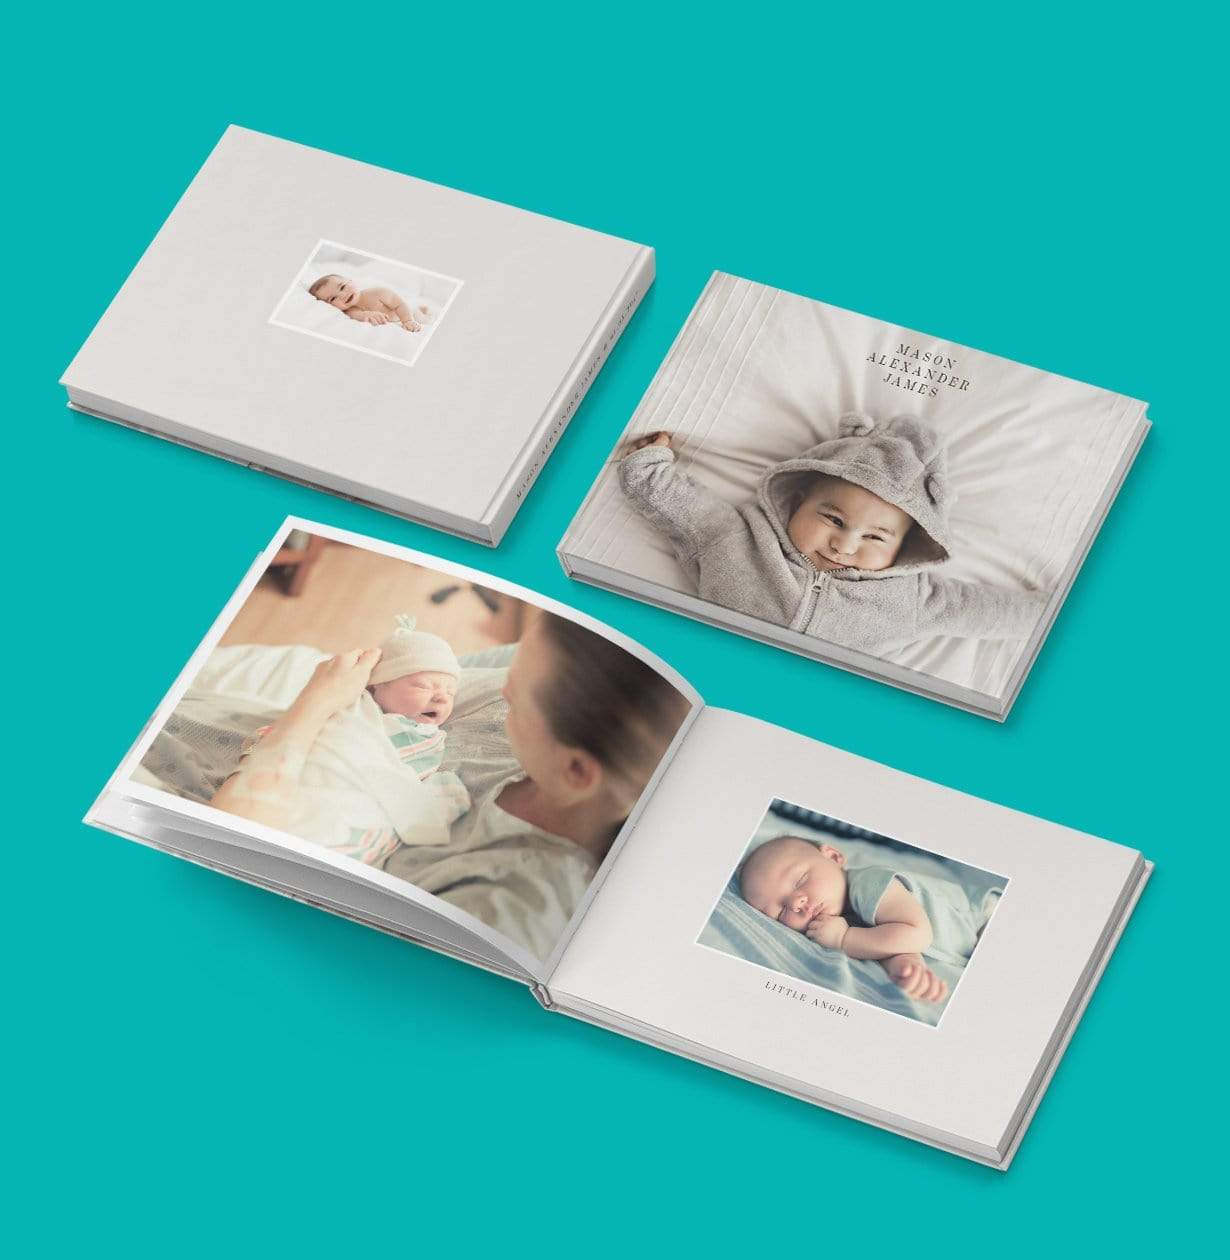 Hardcover Photo Books Printed in Canada by Posterjack